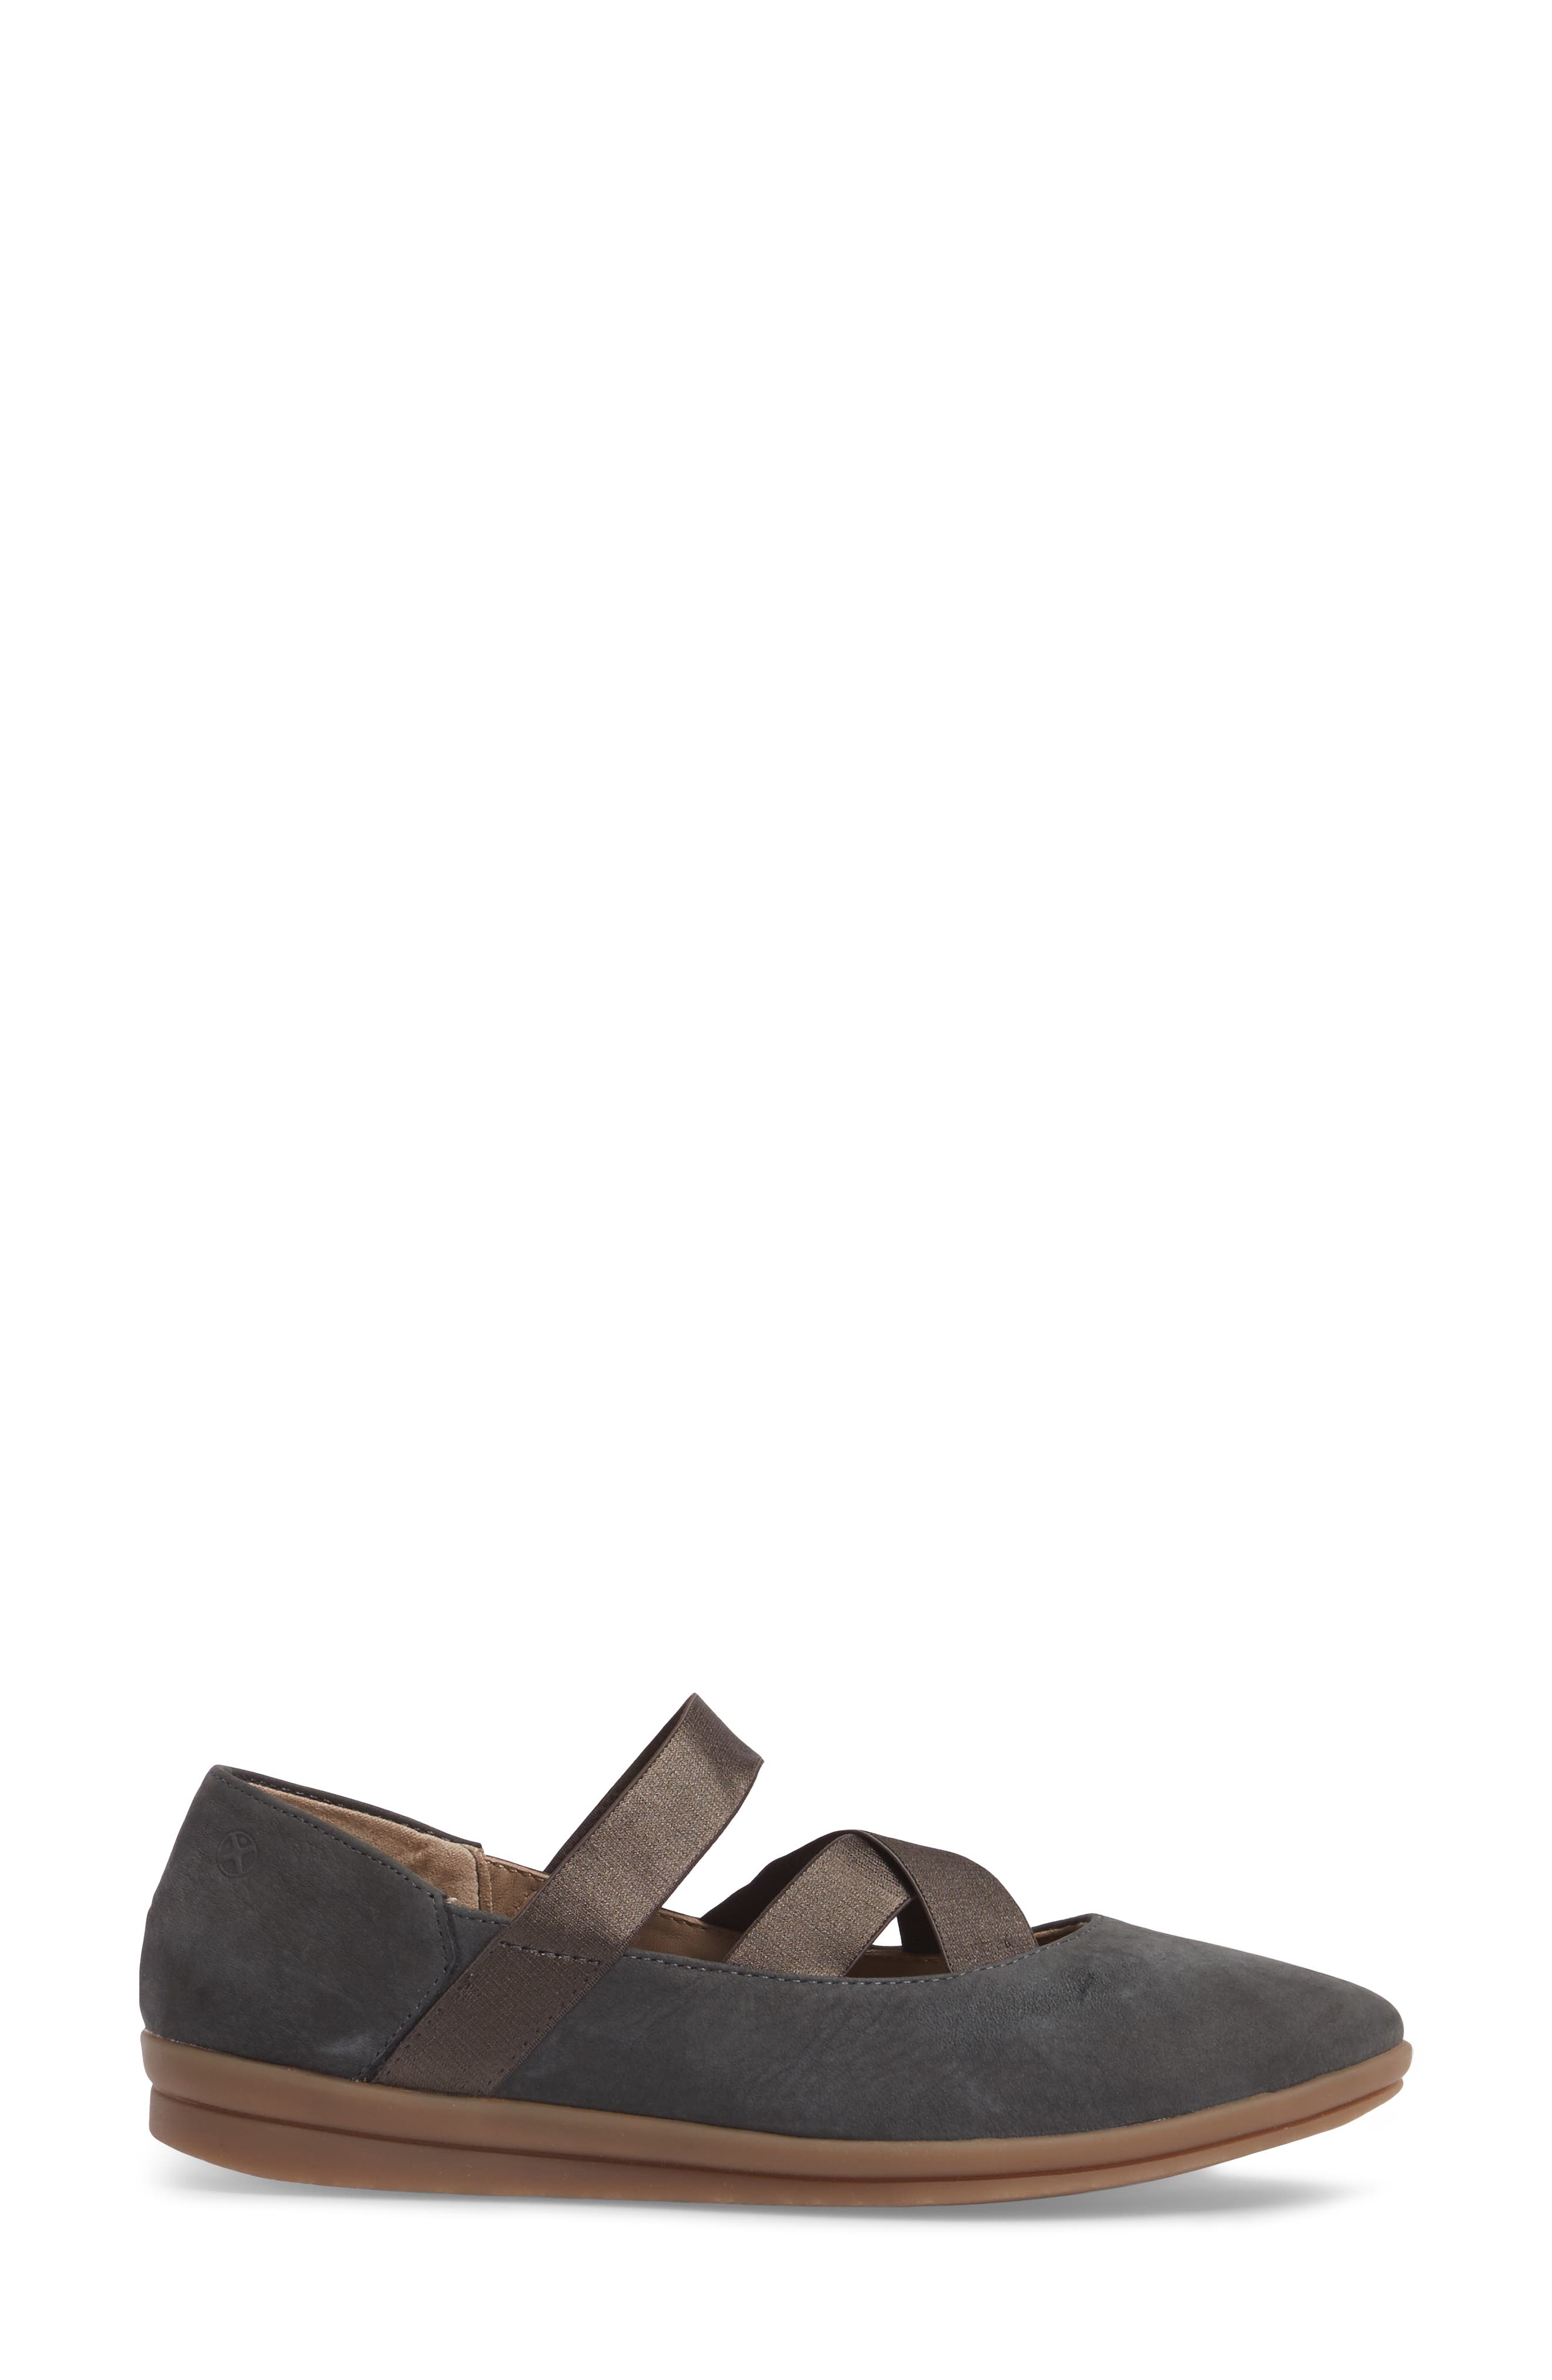 Meree Madrine Cross Strap Flat,                             Alternate thumbnail 14, color,